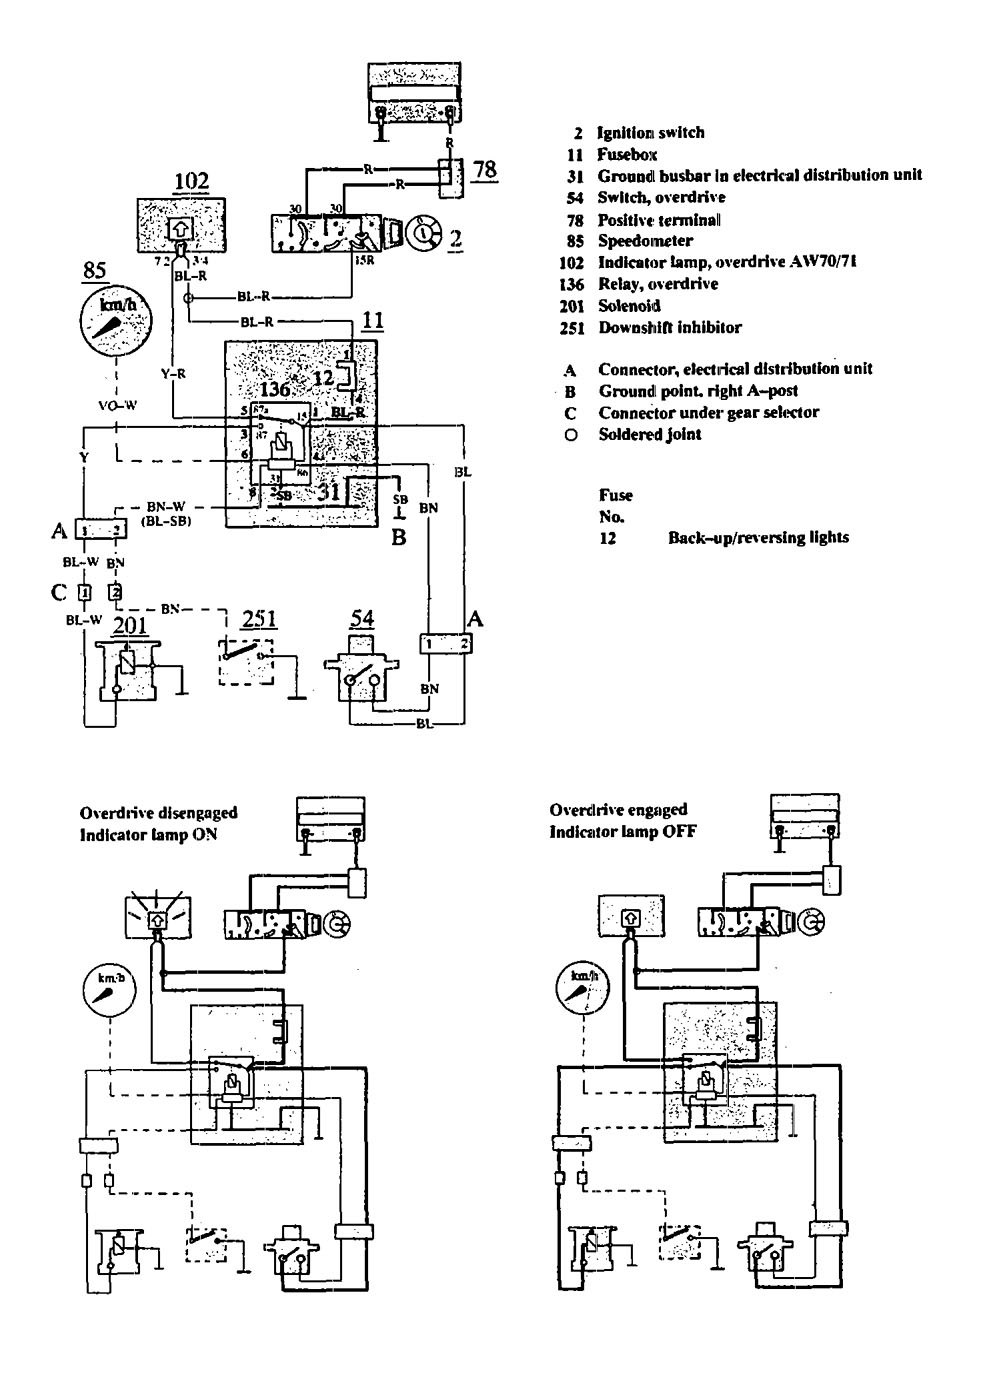 wiring diagram for 1991 volvo 740